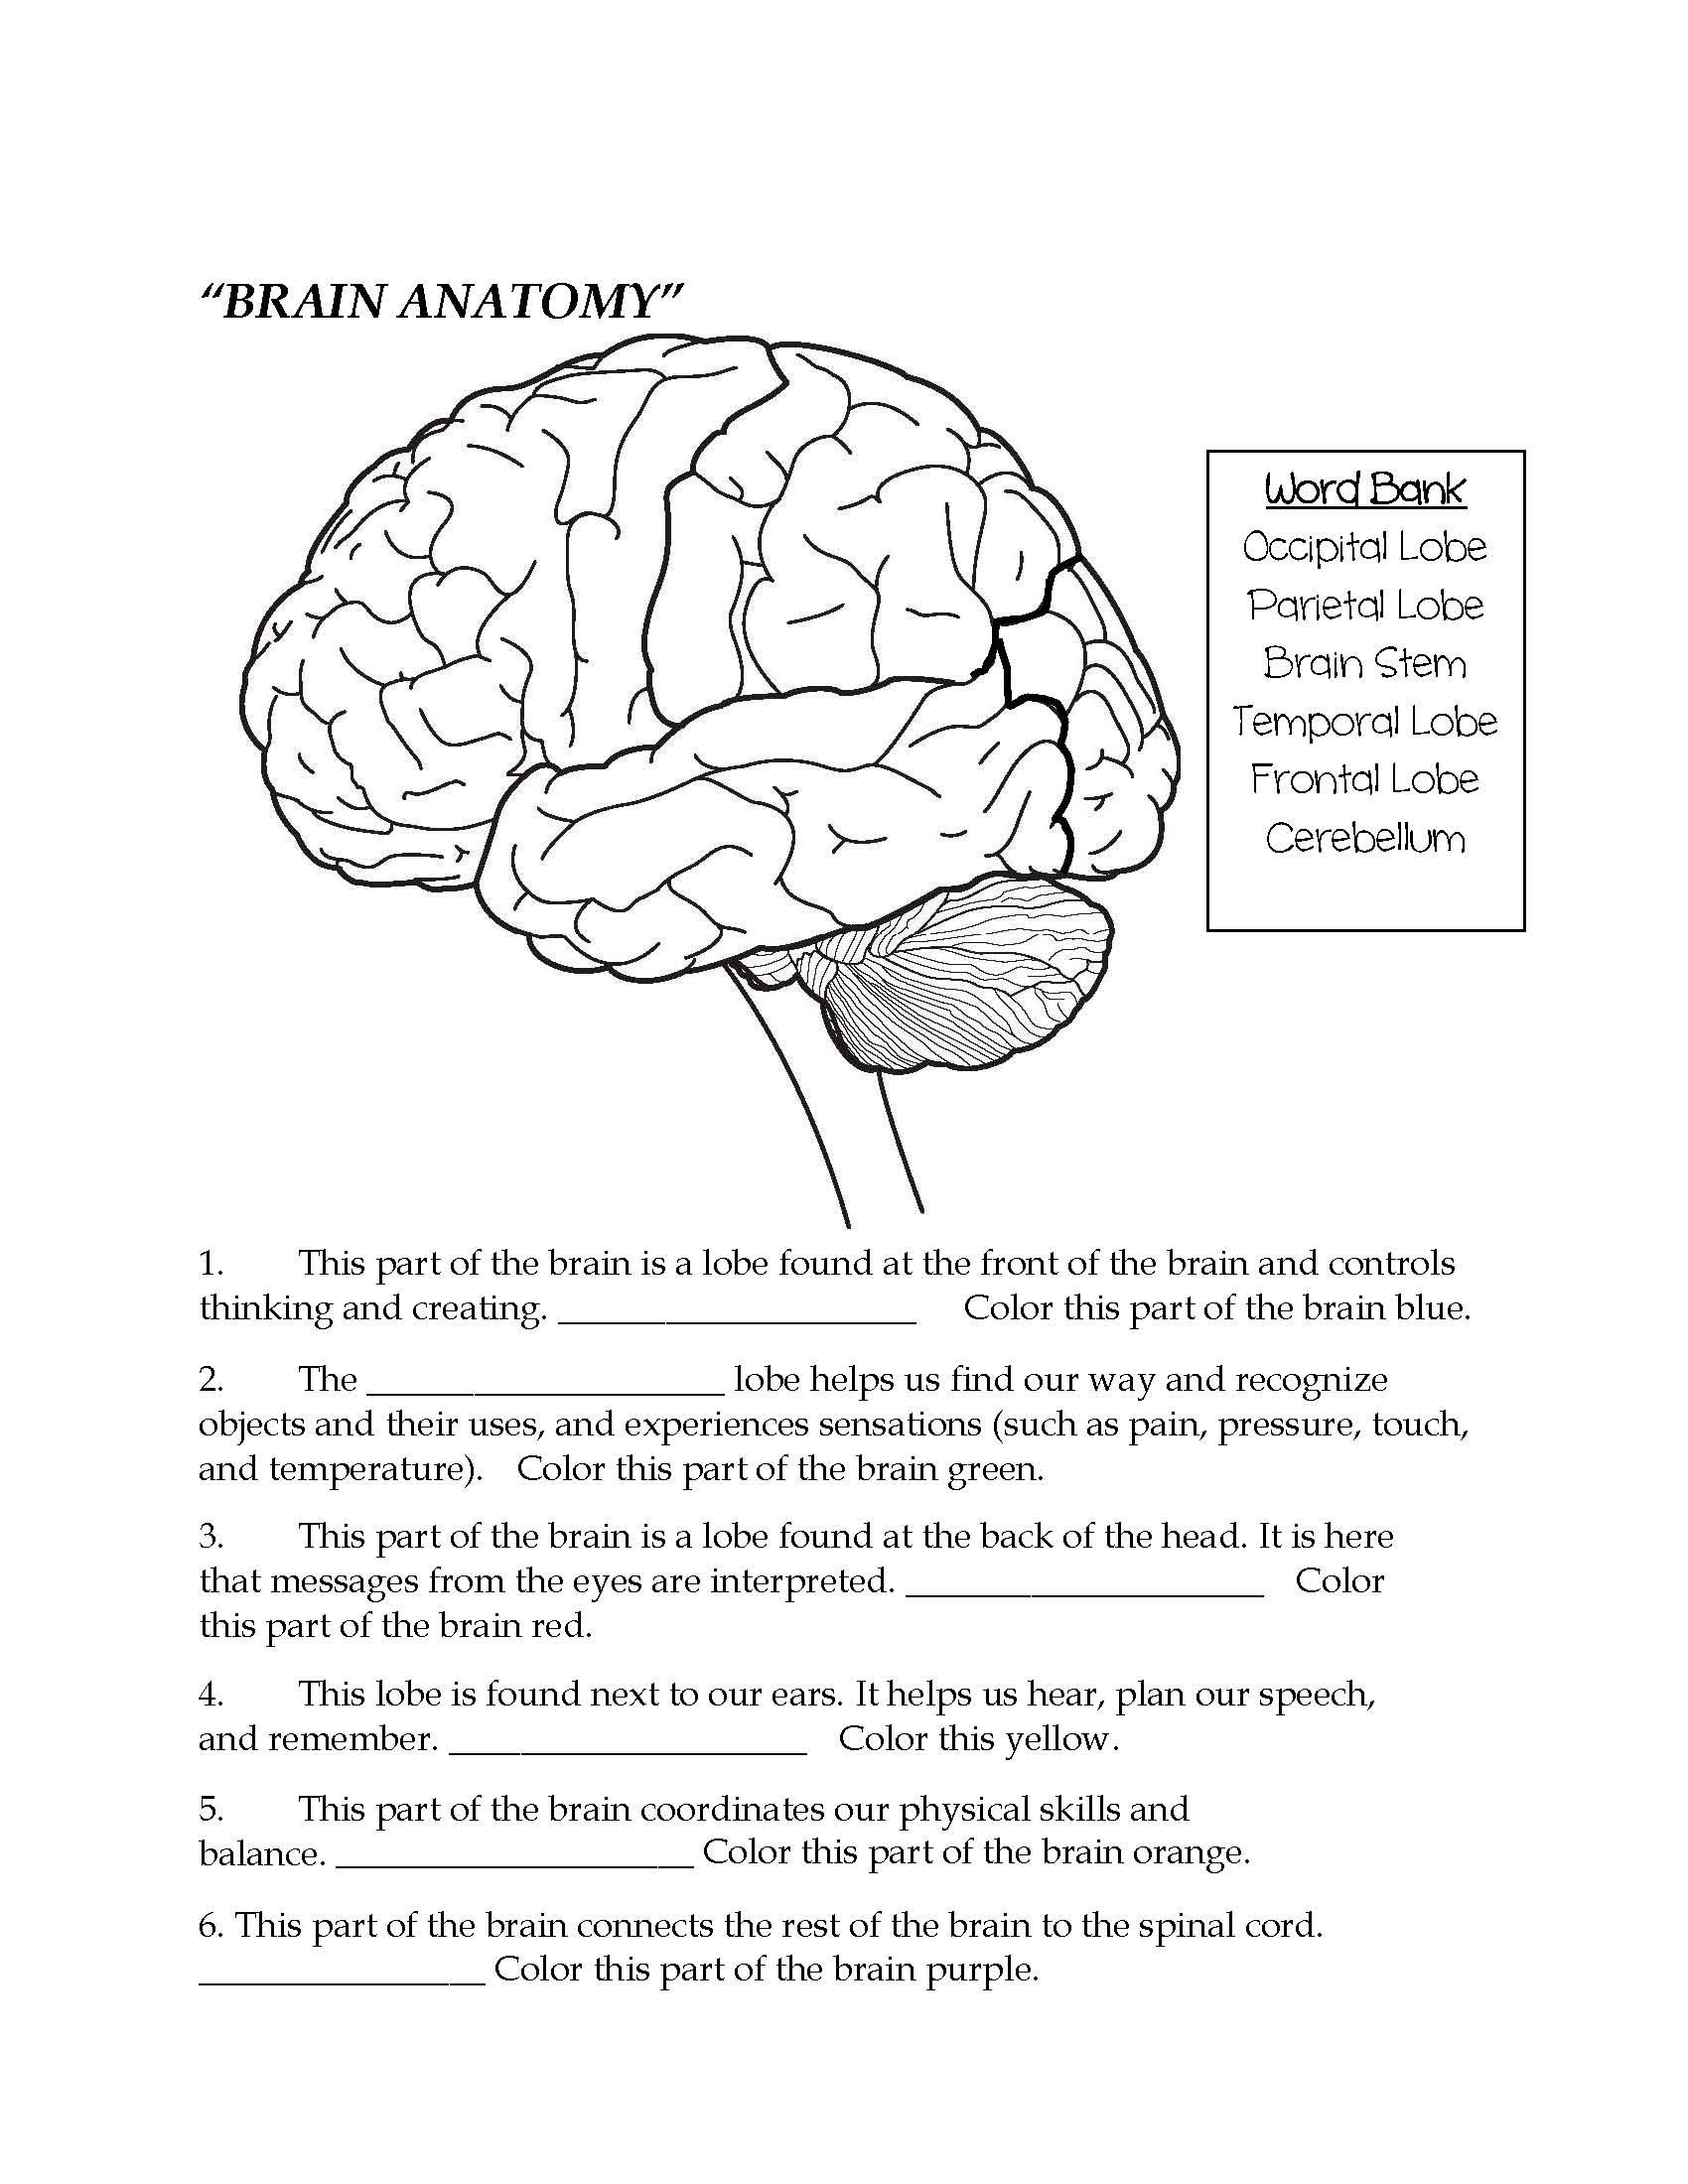 Brain Parts Fill In The Blank Color Teaching Middle School